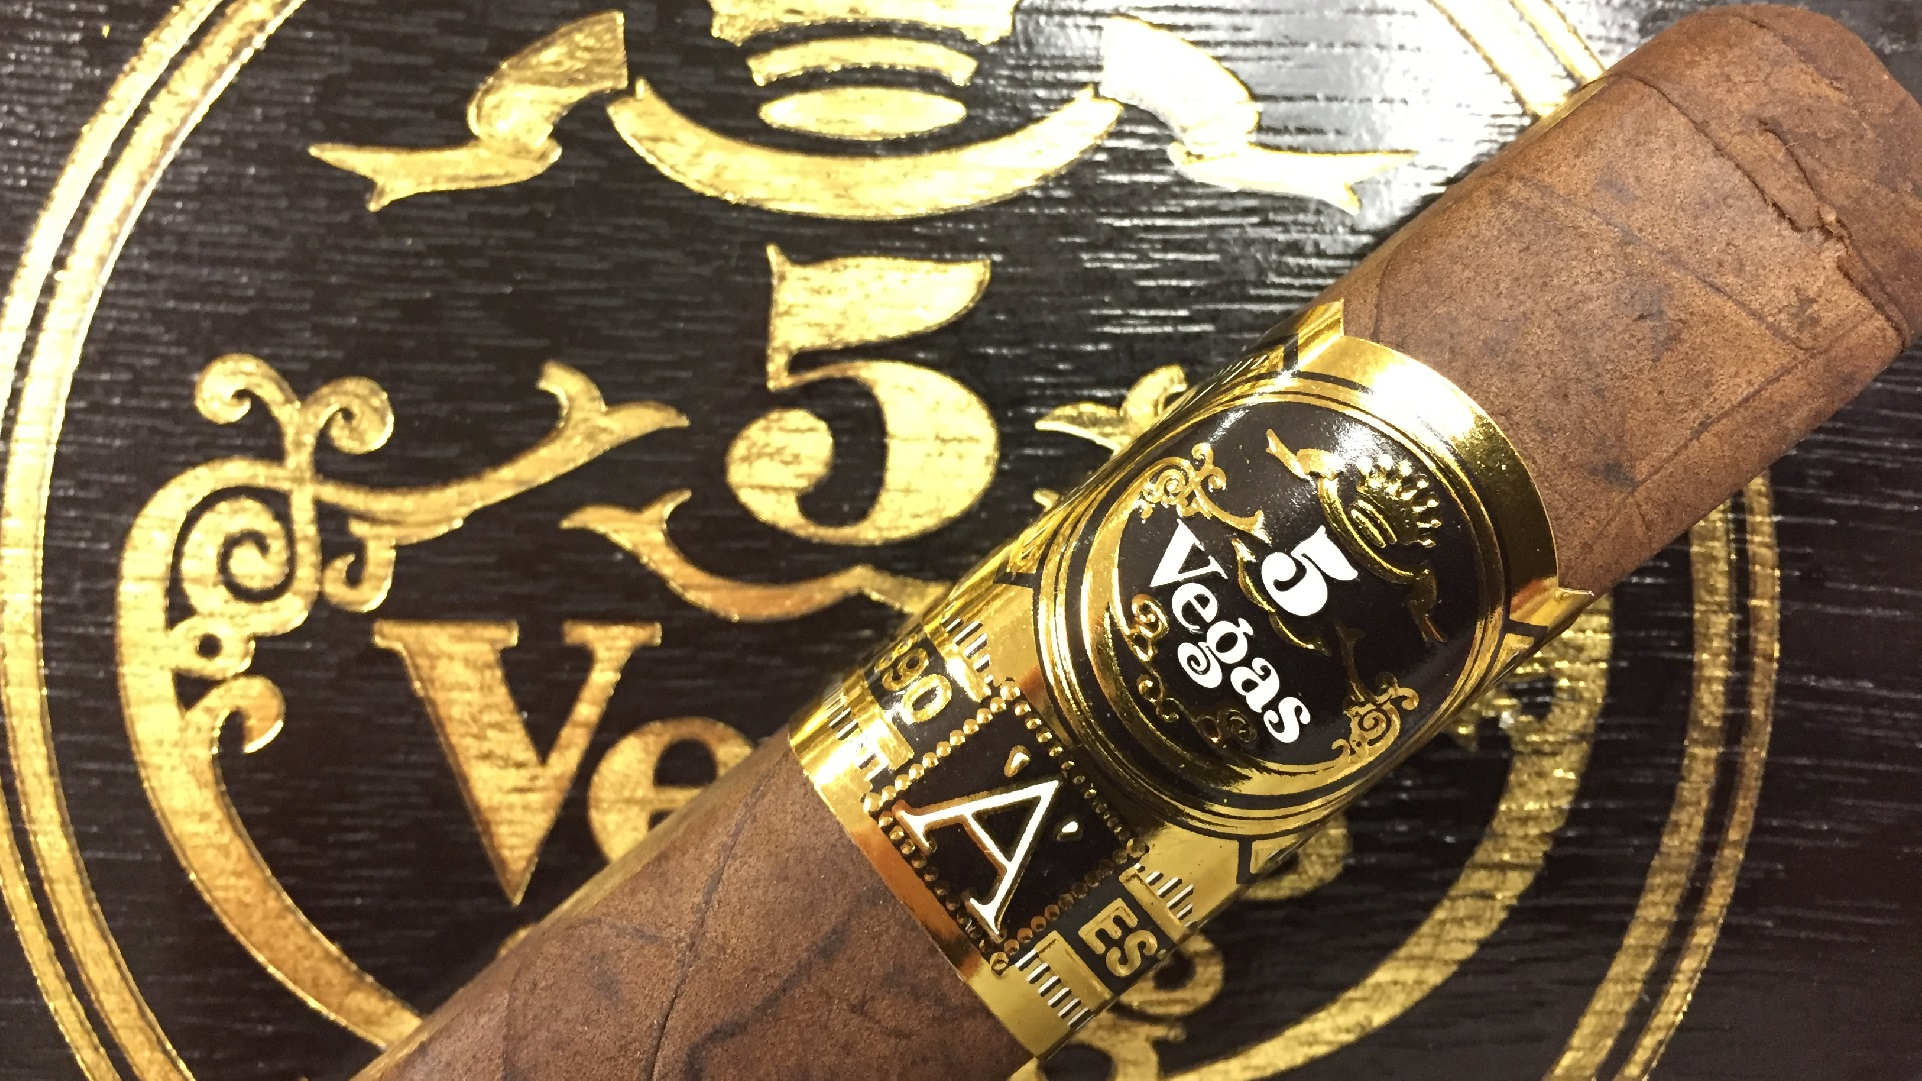 5 Vegas Series A Atomic, Robusto - 5 Pack image